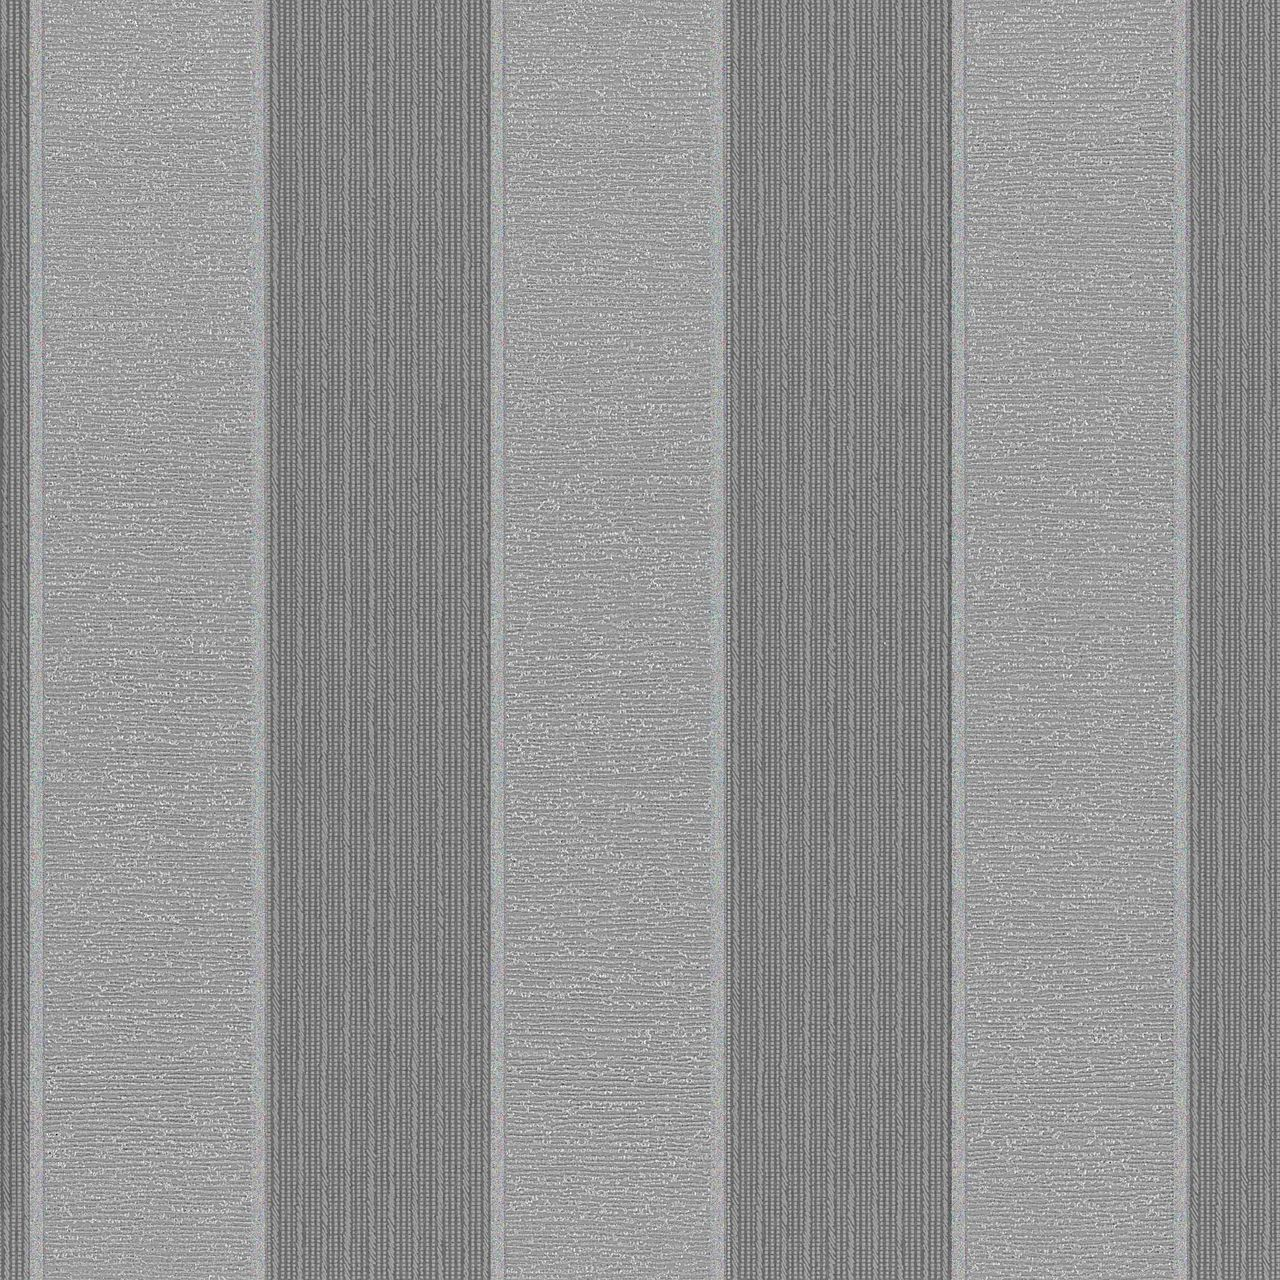 Gray Striped Wallpapers 20 Wallpapers Adorable Wallpapers